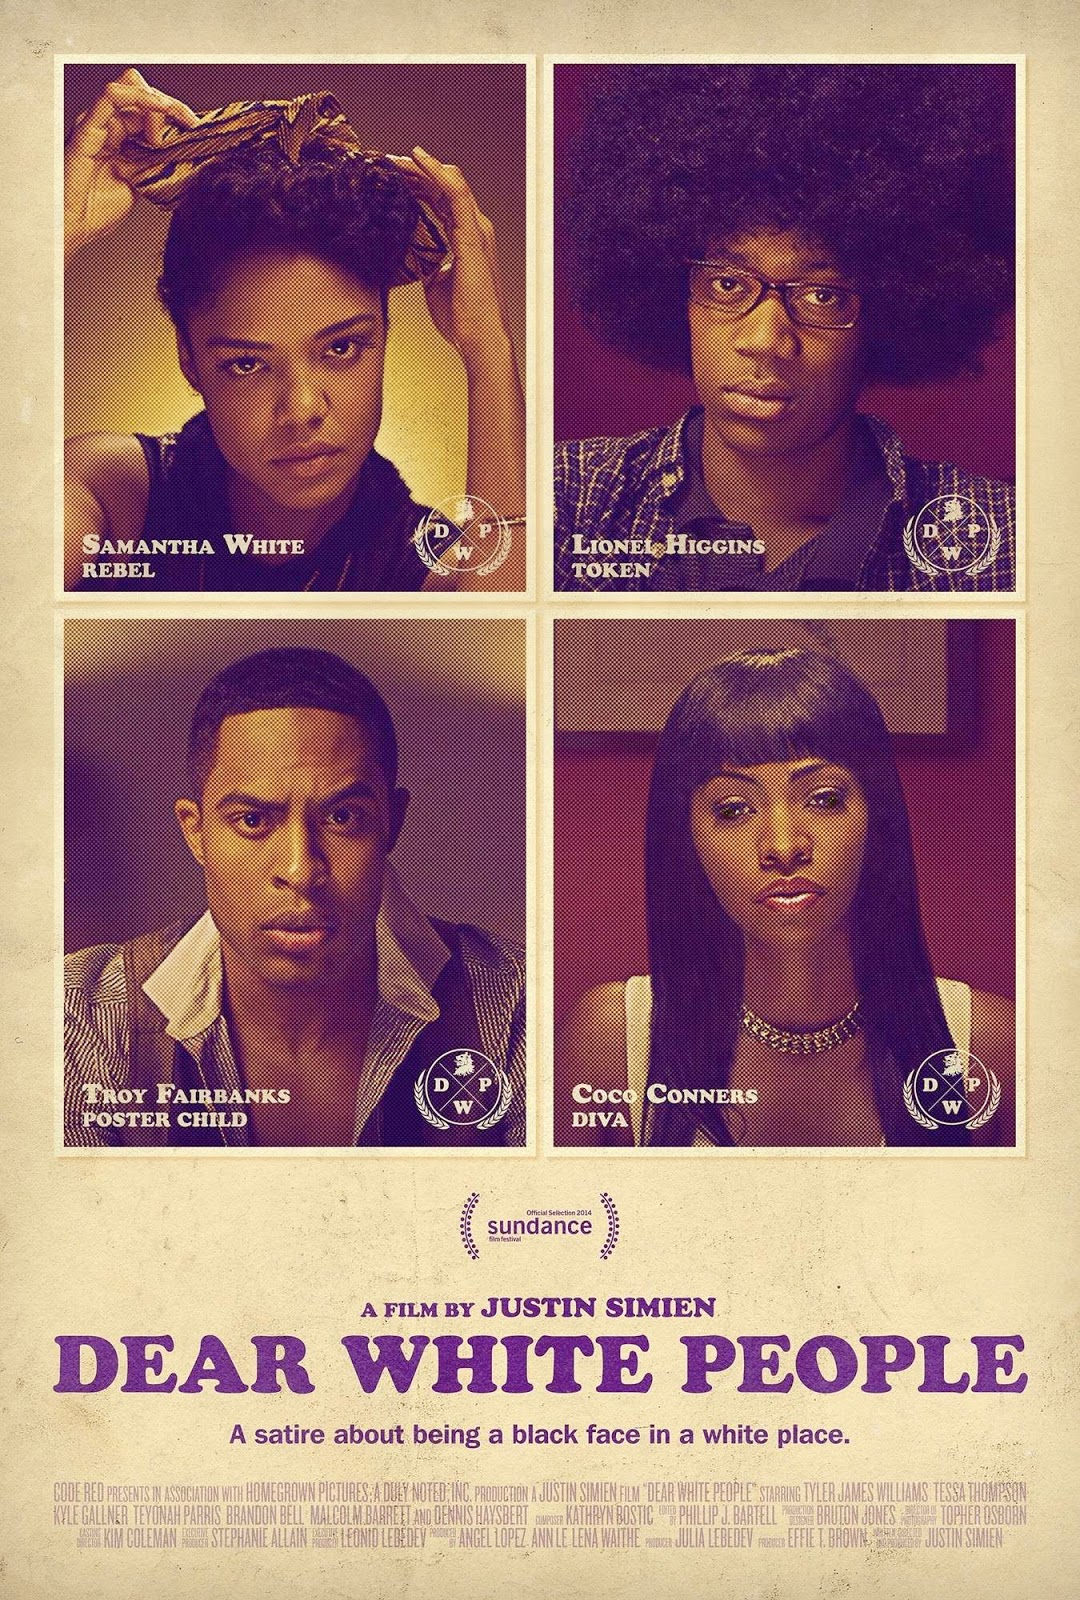 I want to talk about Dear White People